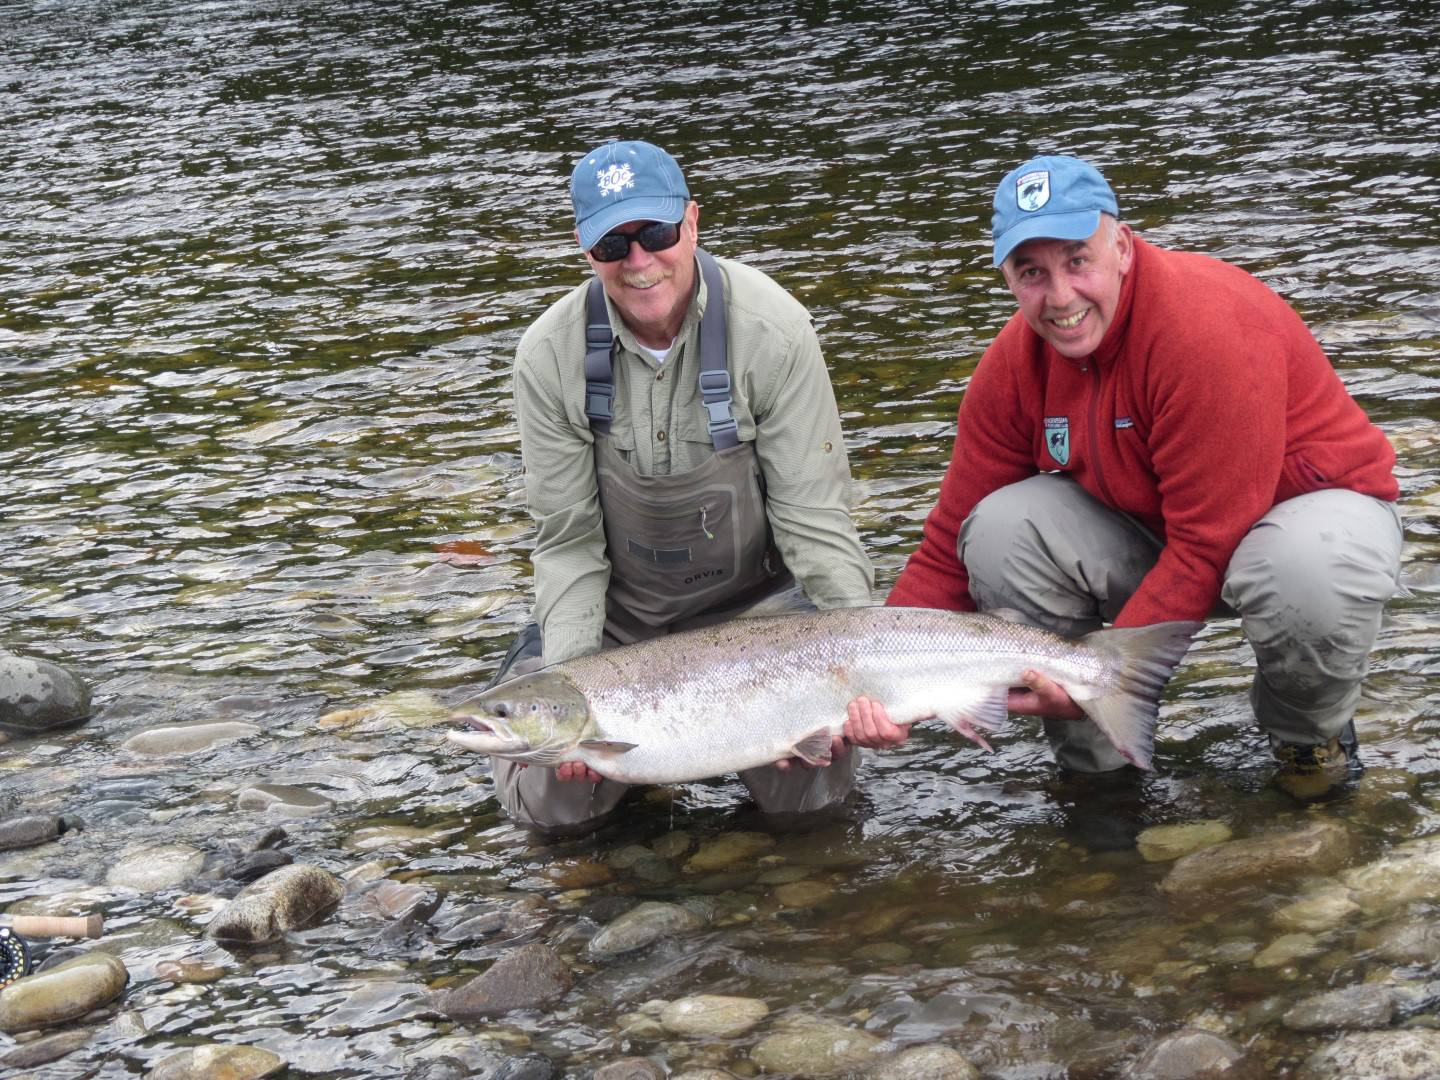 John Bleh with guide Simon Kitcher holding the big female fish